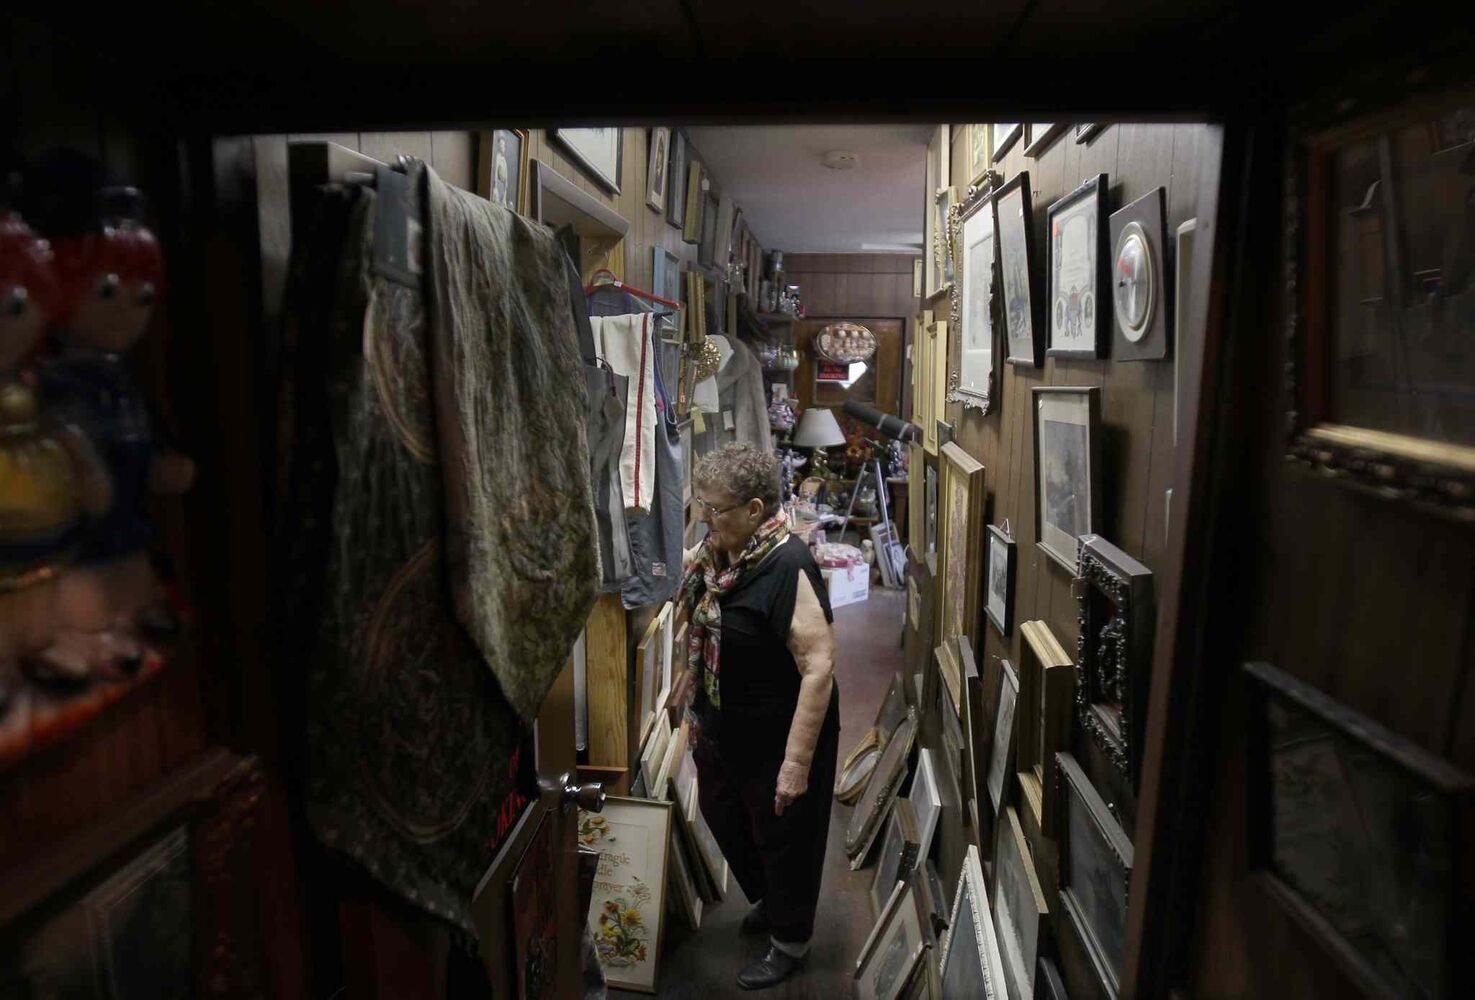 Vivian Proden makes her way through the tiny hallways in her store. Proden, 84, owns Junk for Joy just East of  Portage La Prairie, Manitoba on Hyw. She is retiring after 34 years in the junk business and is having a 50% off sale starting this Friday. ((JOE BRYKSA / WINNIPEG FREE PRESS))